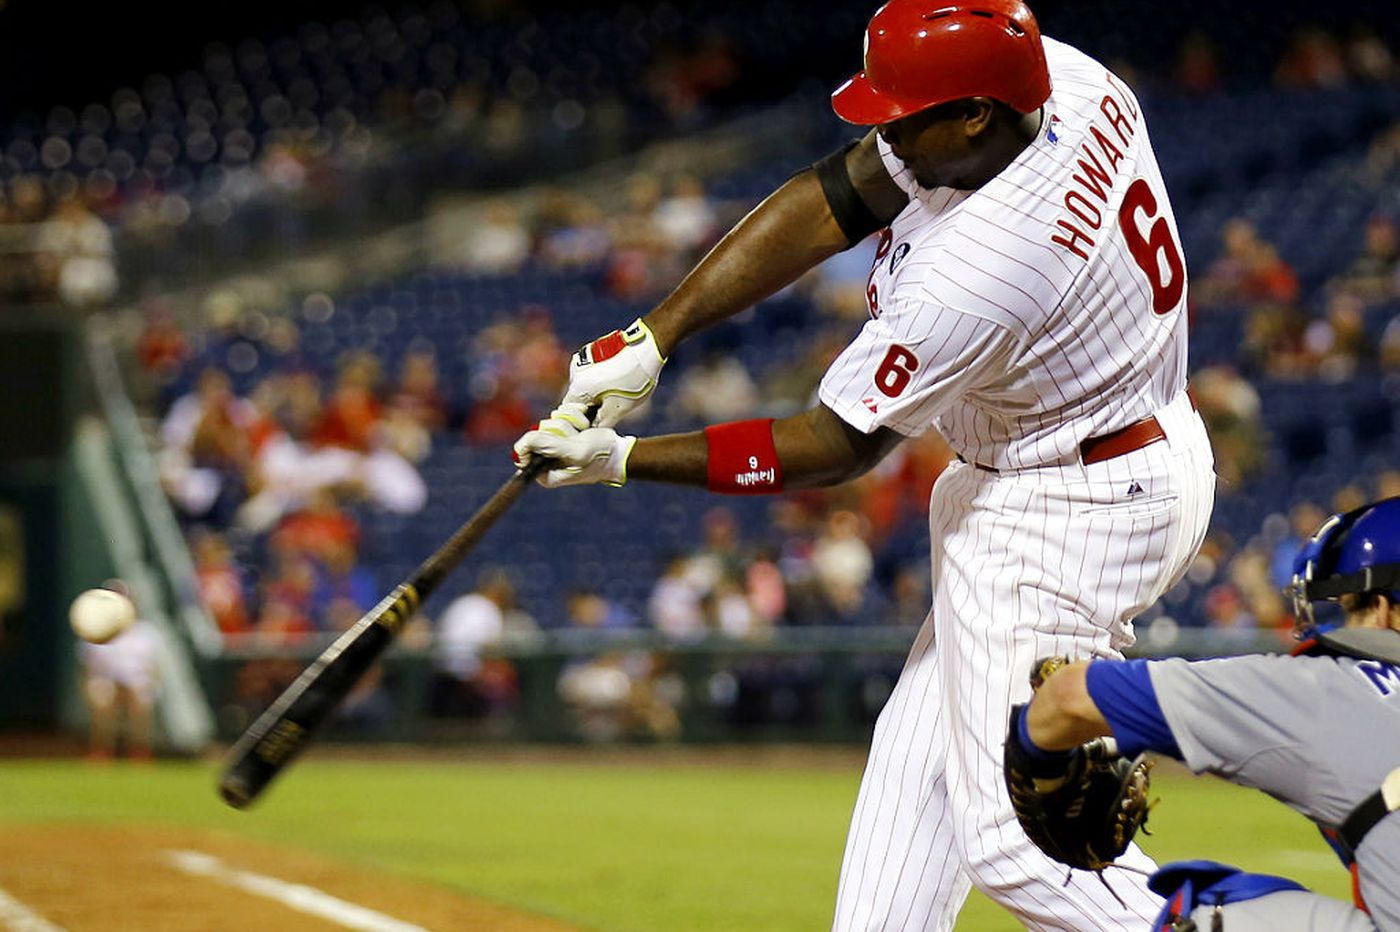 Phillies' Ryan Howard might be done for season